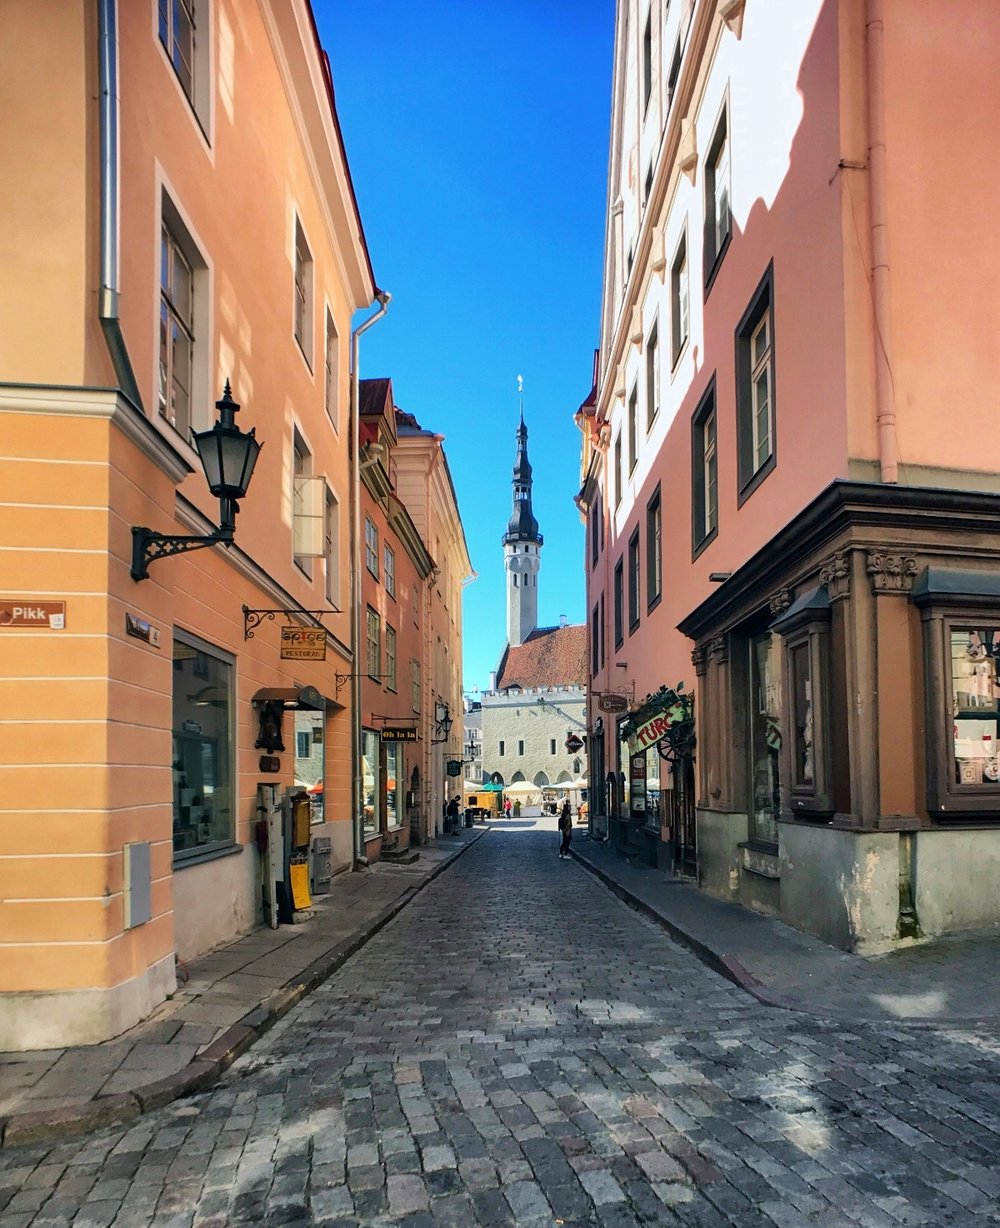 Pikk Tanev (Long Street) in Old Town Tallinn